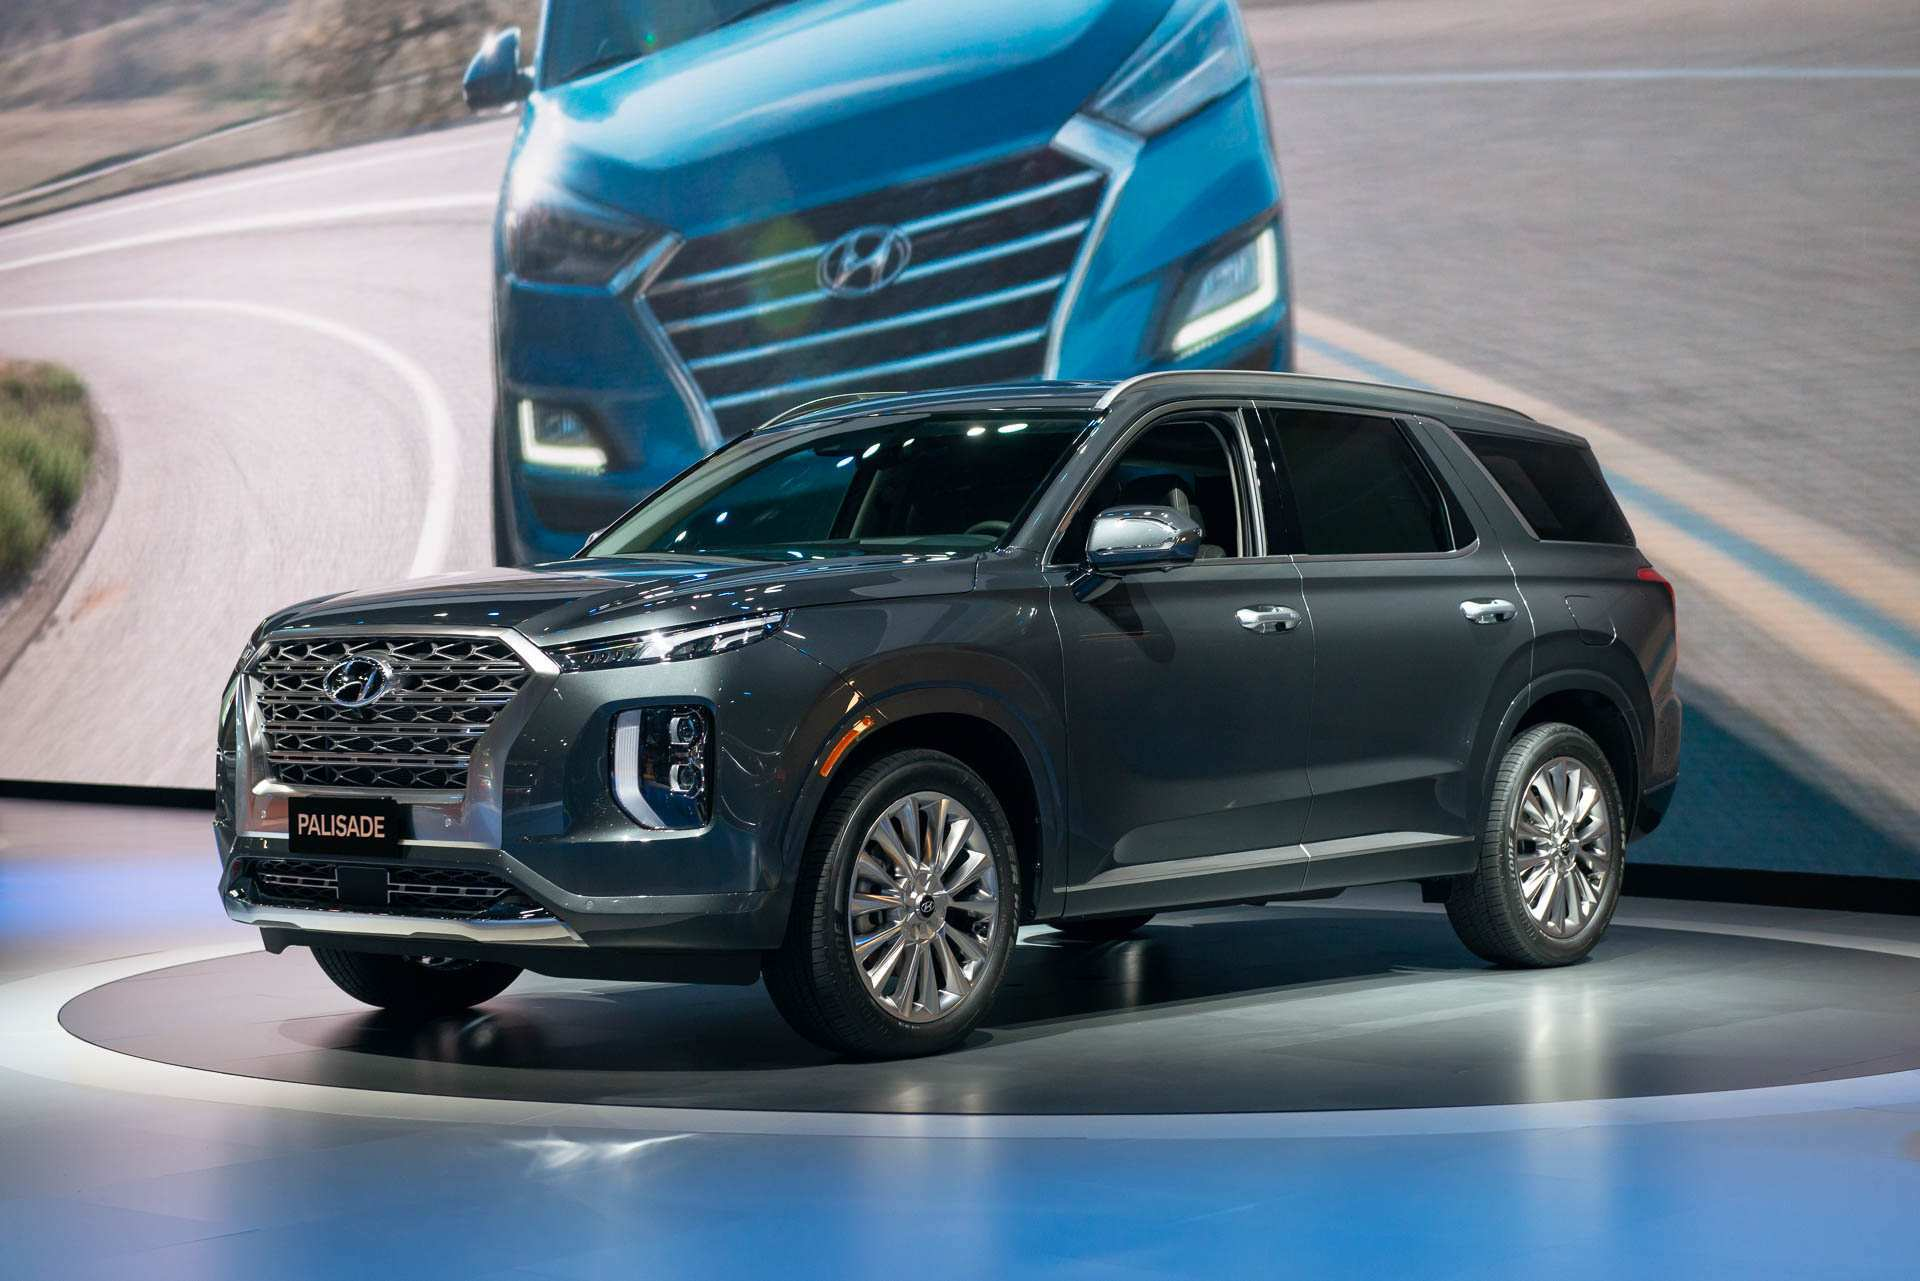 83 The Best When Is The 2020 Hyundai Palisade Coming Out Images